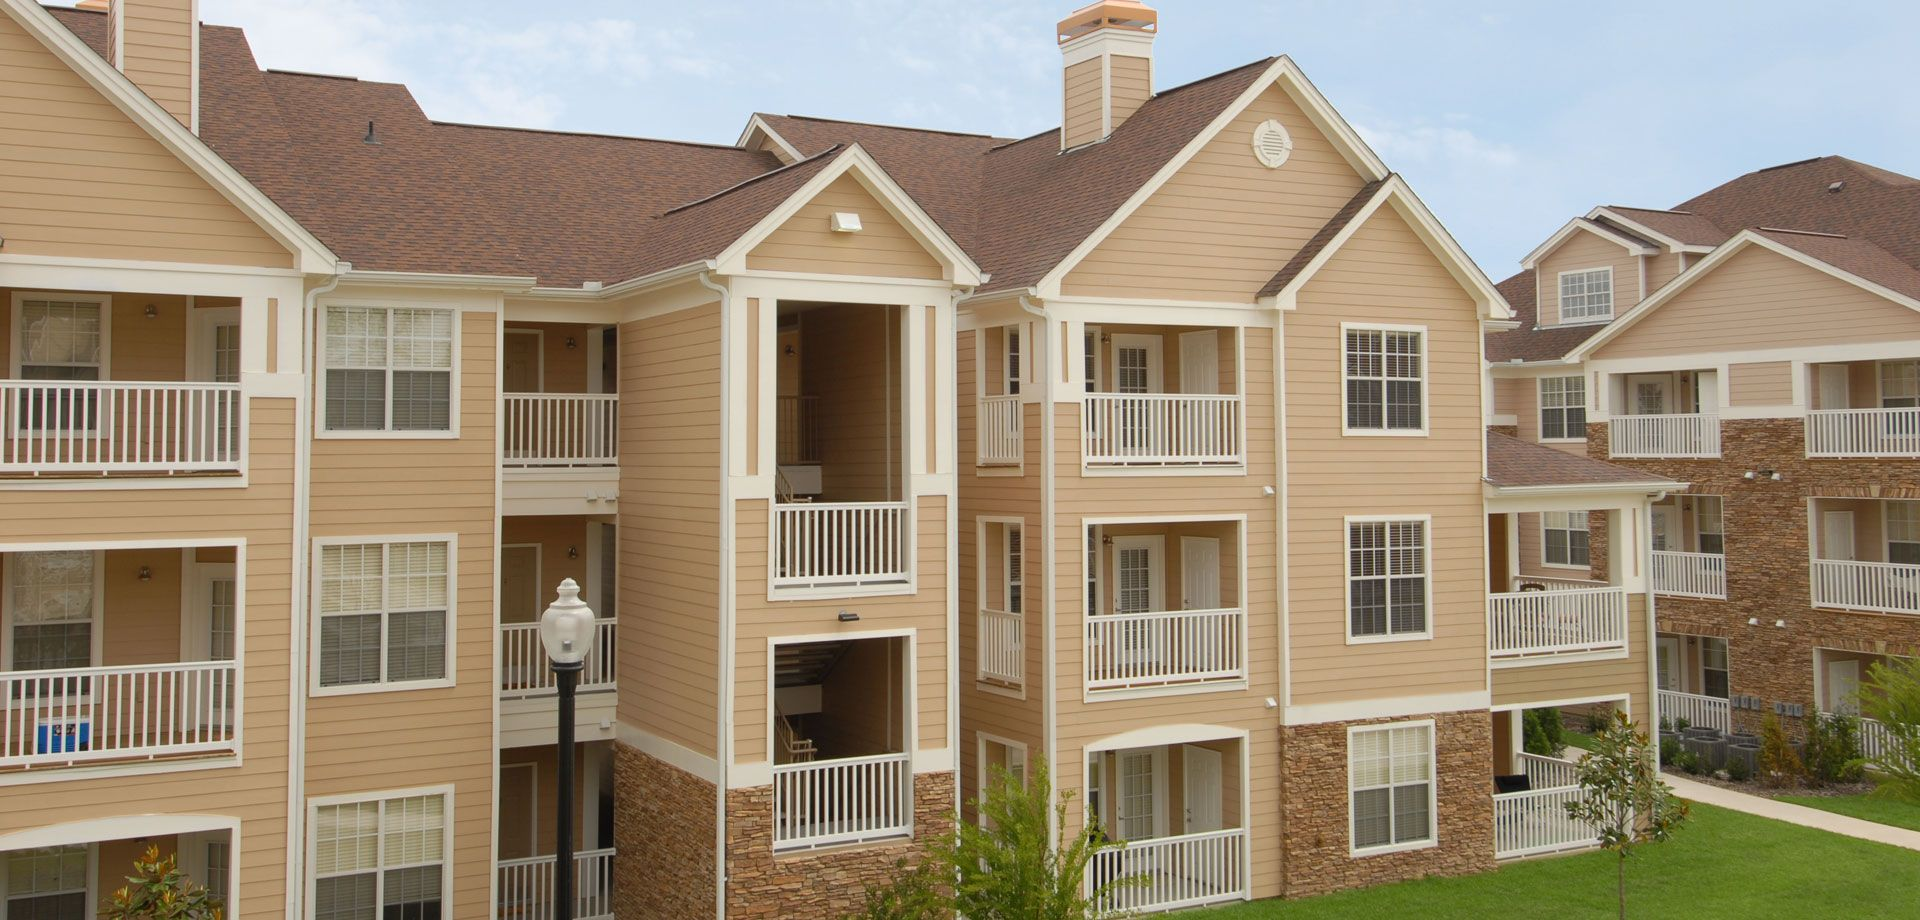 Apartment Homes In Baton Rouge La House Styles Apartment Home